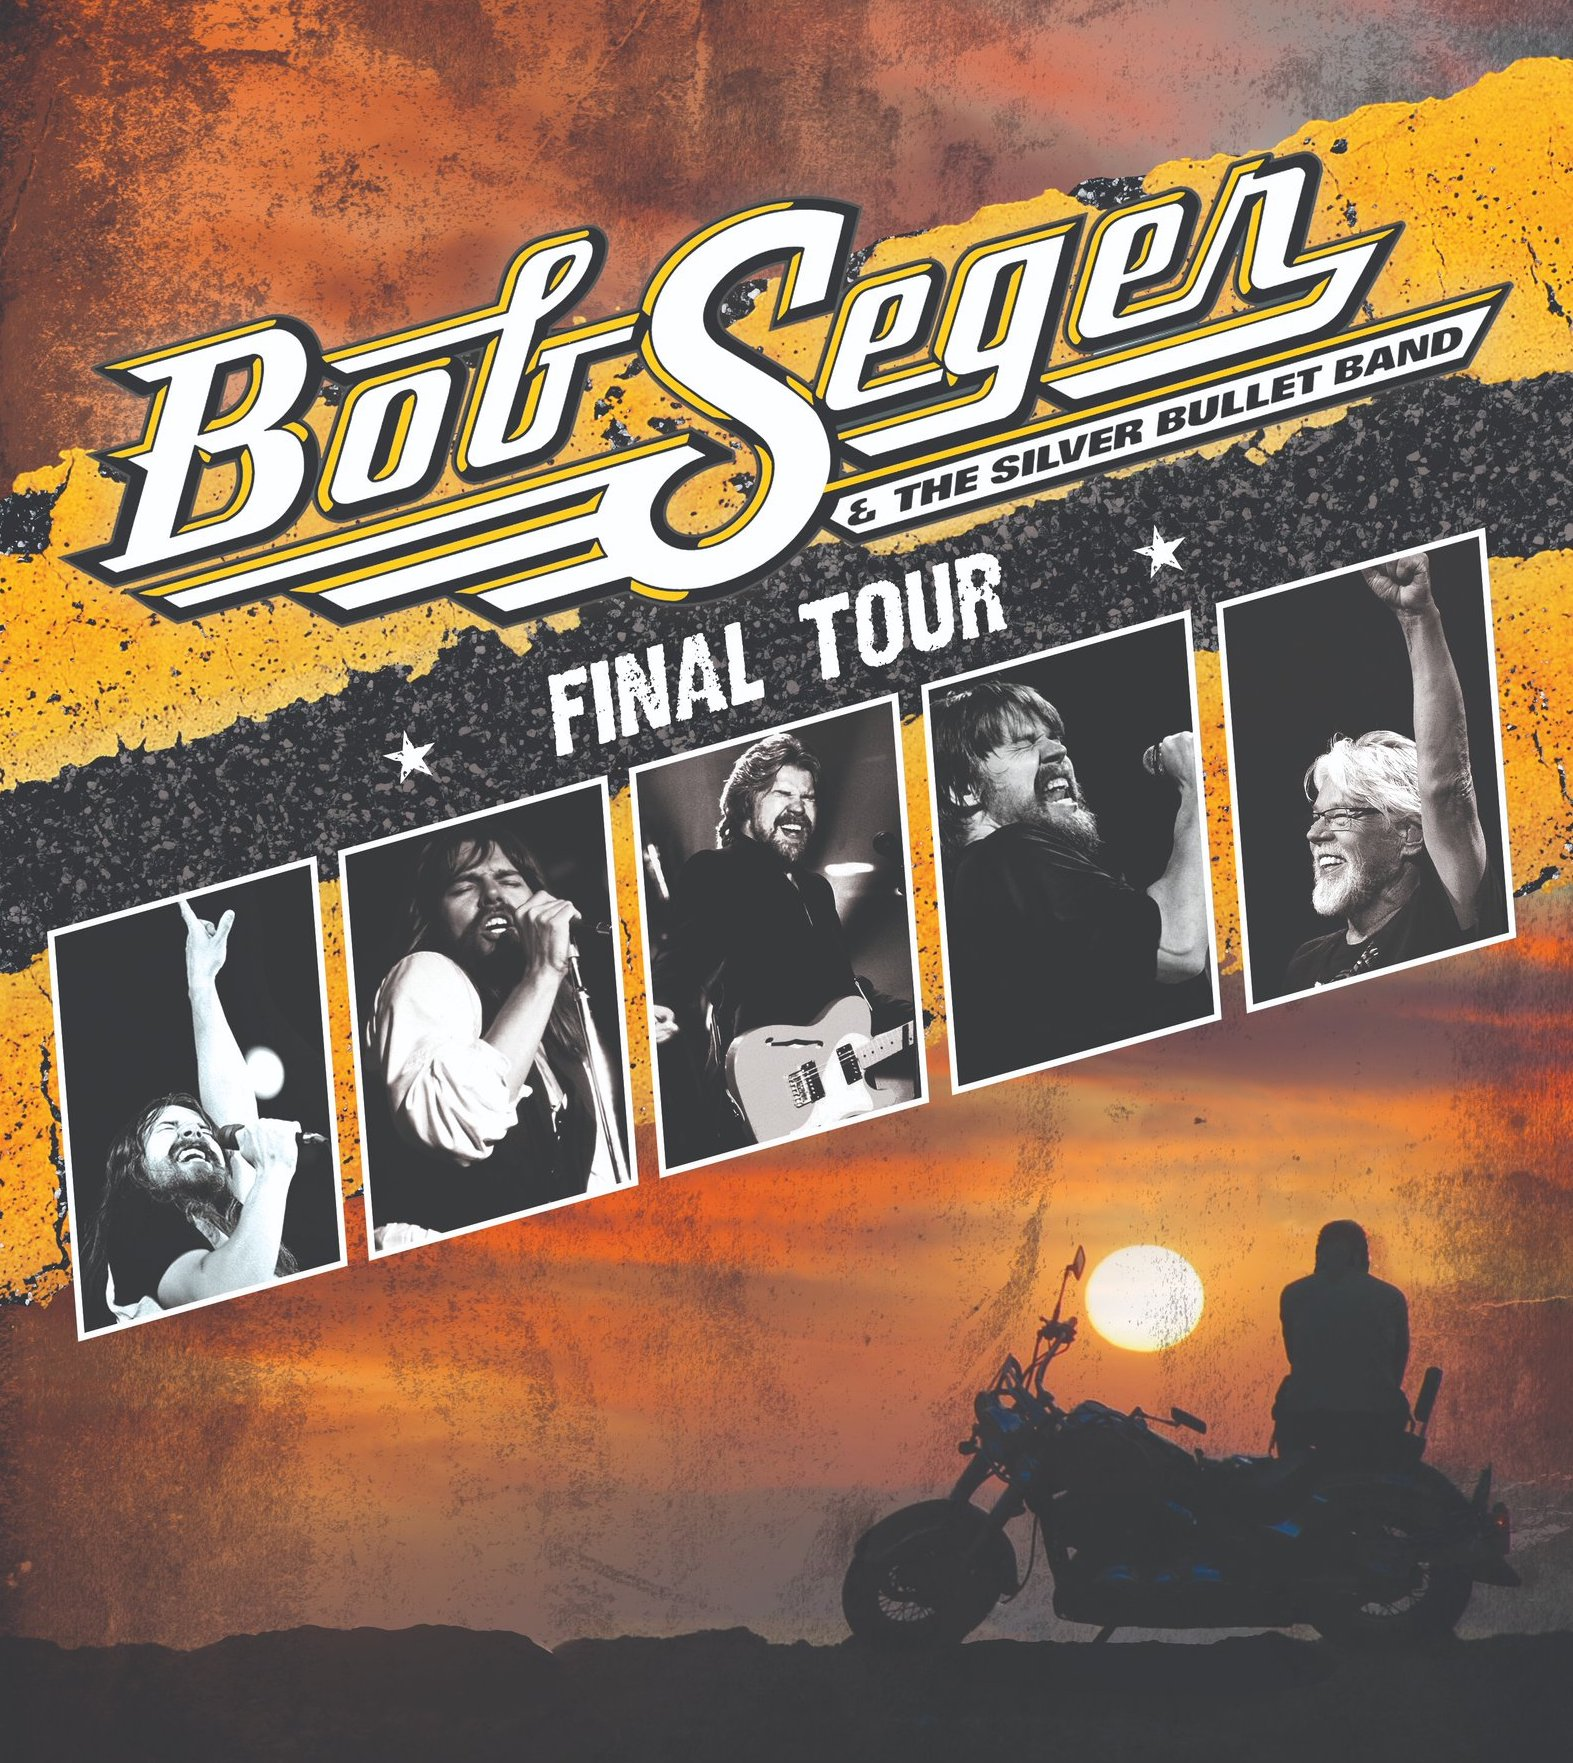 Bob Seger Tour 2019 Bob Seger Final Tour: Live Review | Best Classic Bands